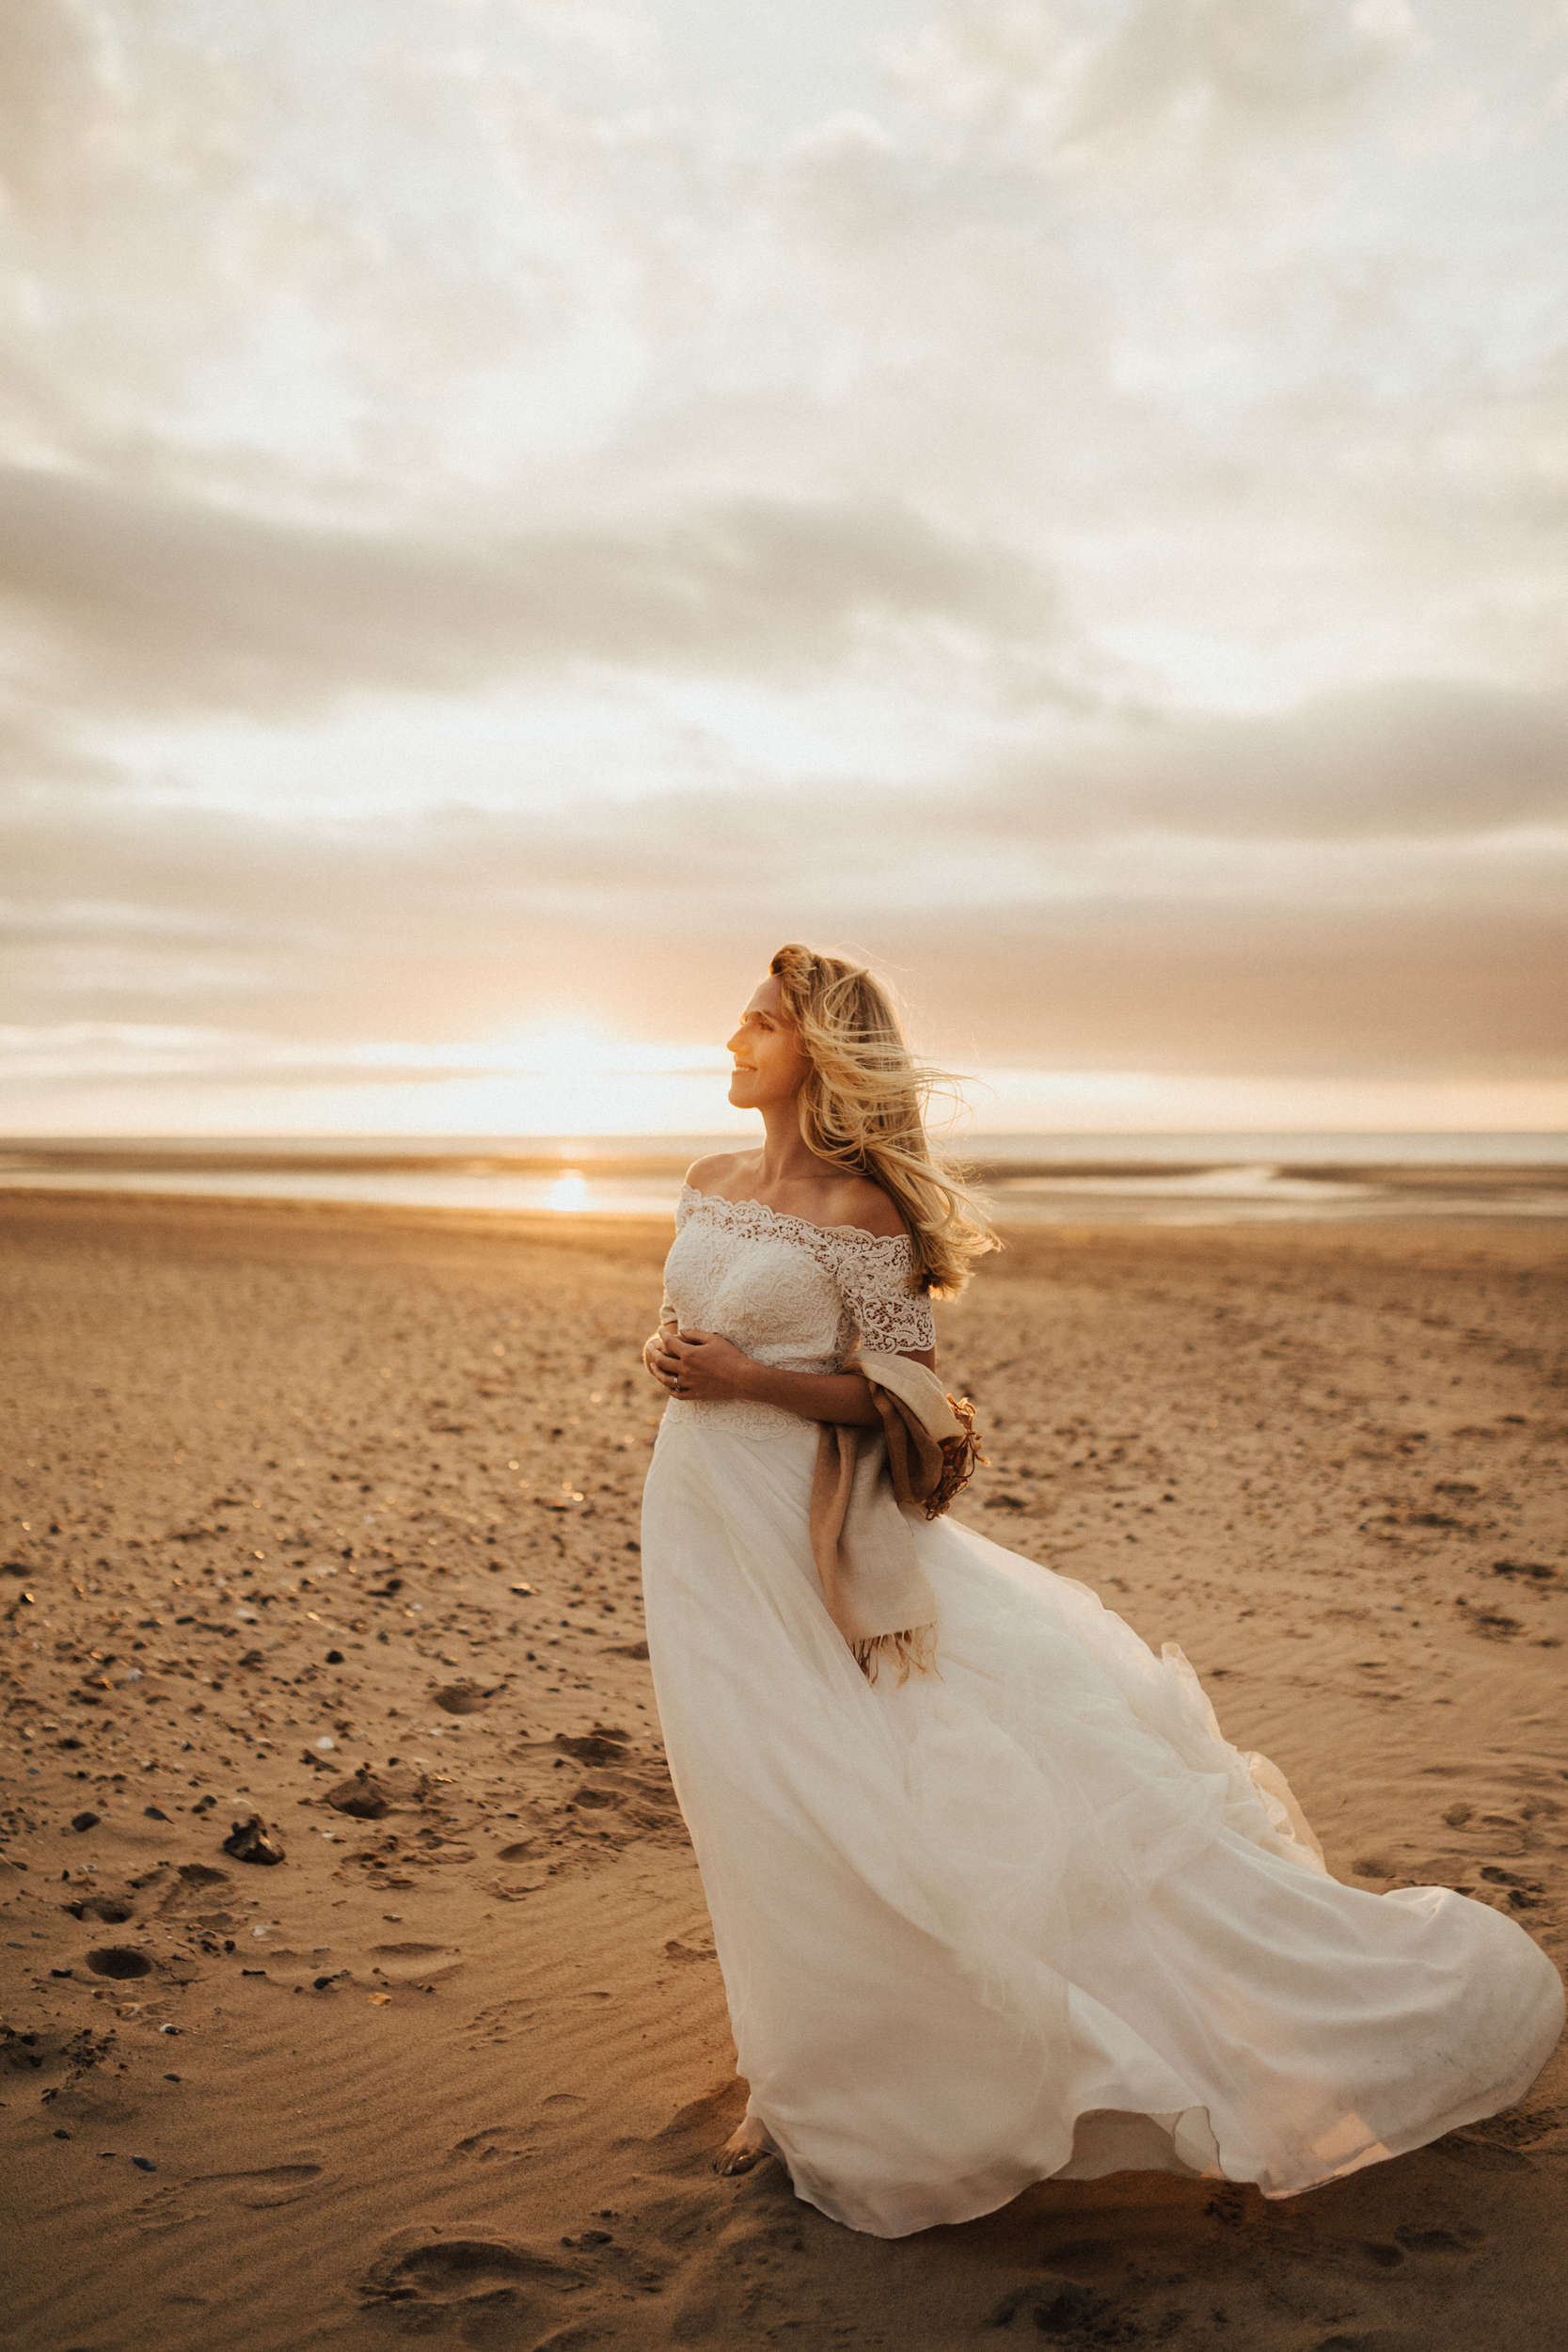 Claire-Clive-Wedding-Norfolk-Beach-Session-Love-Darina-Stoda-Photography-331.jpg